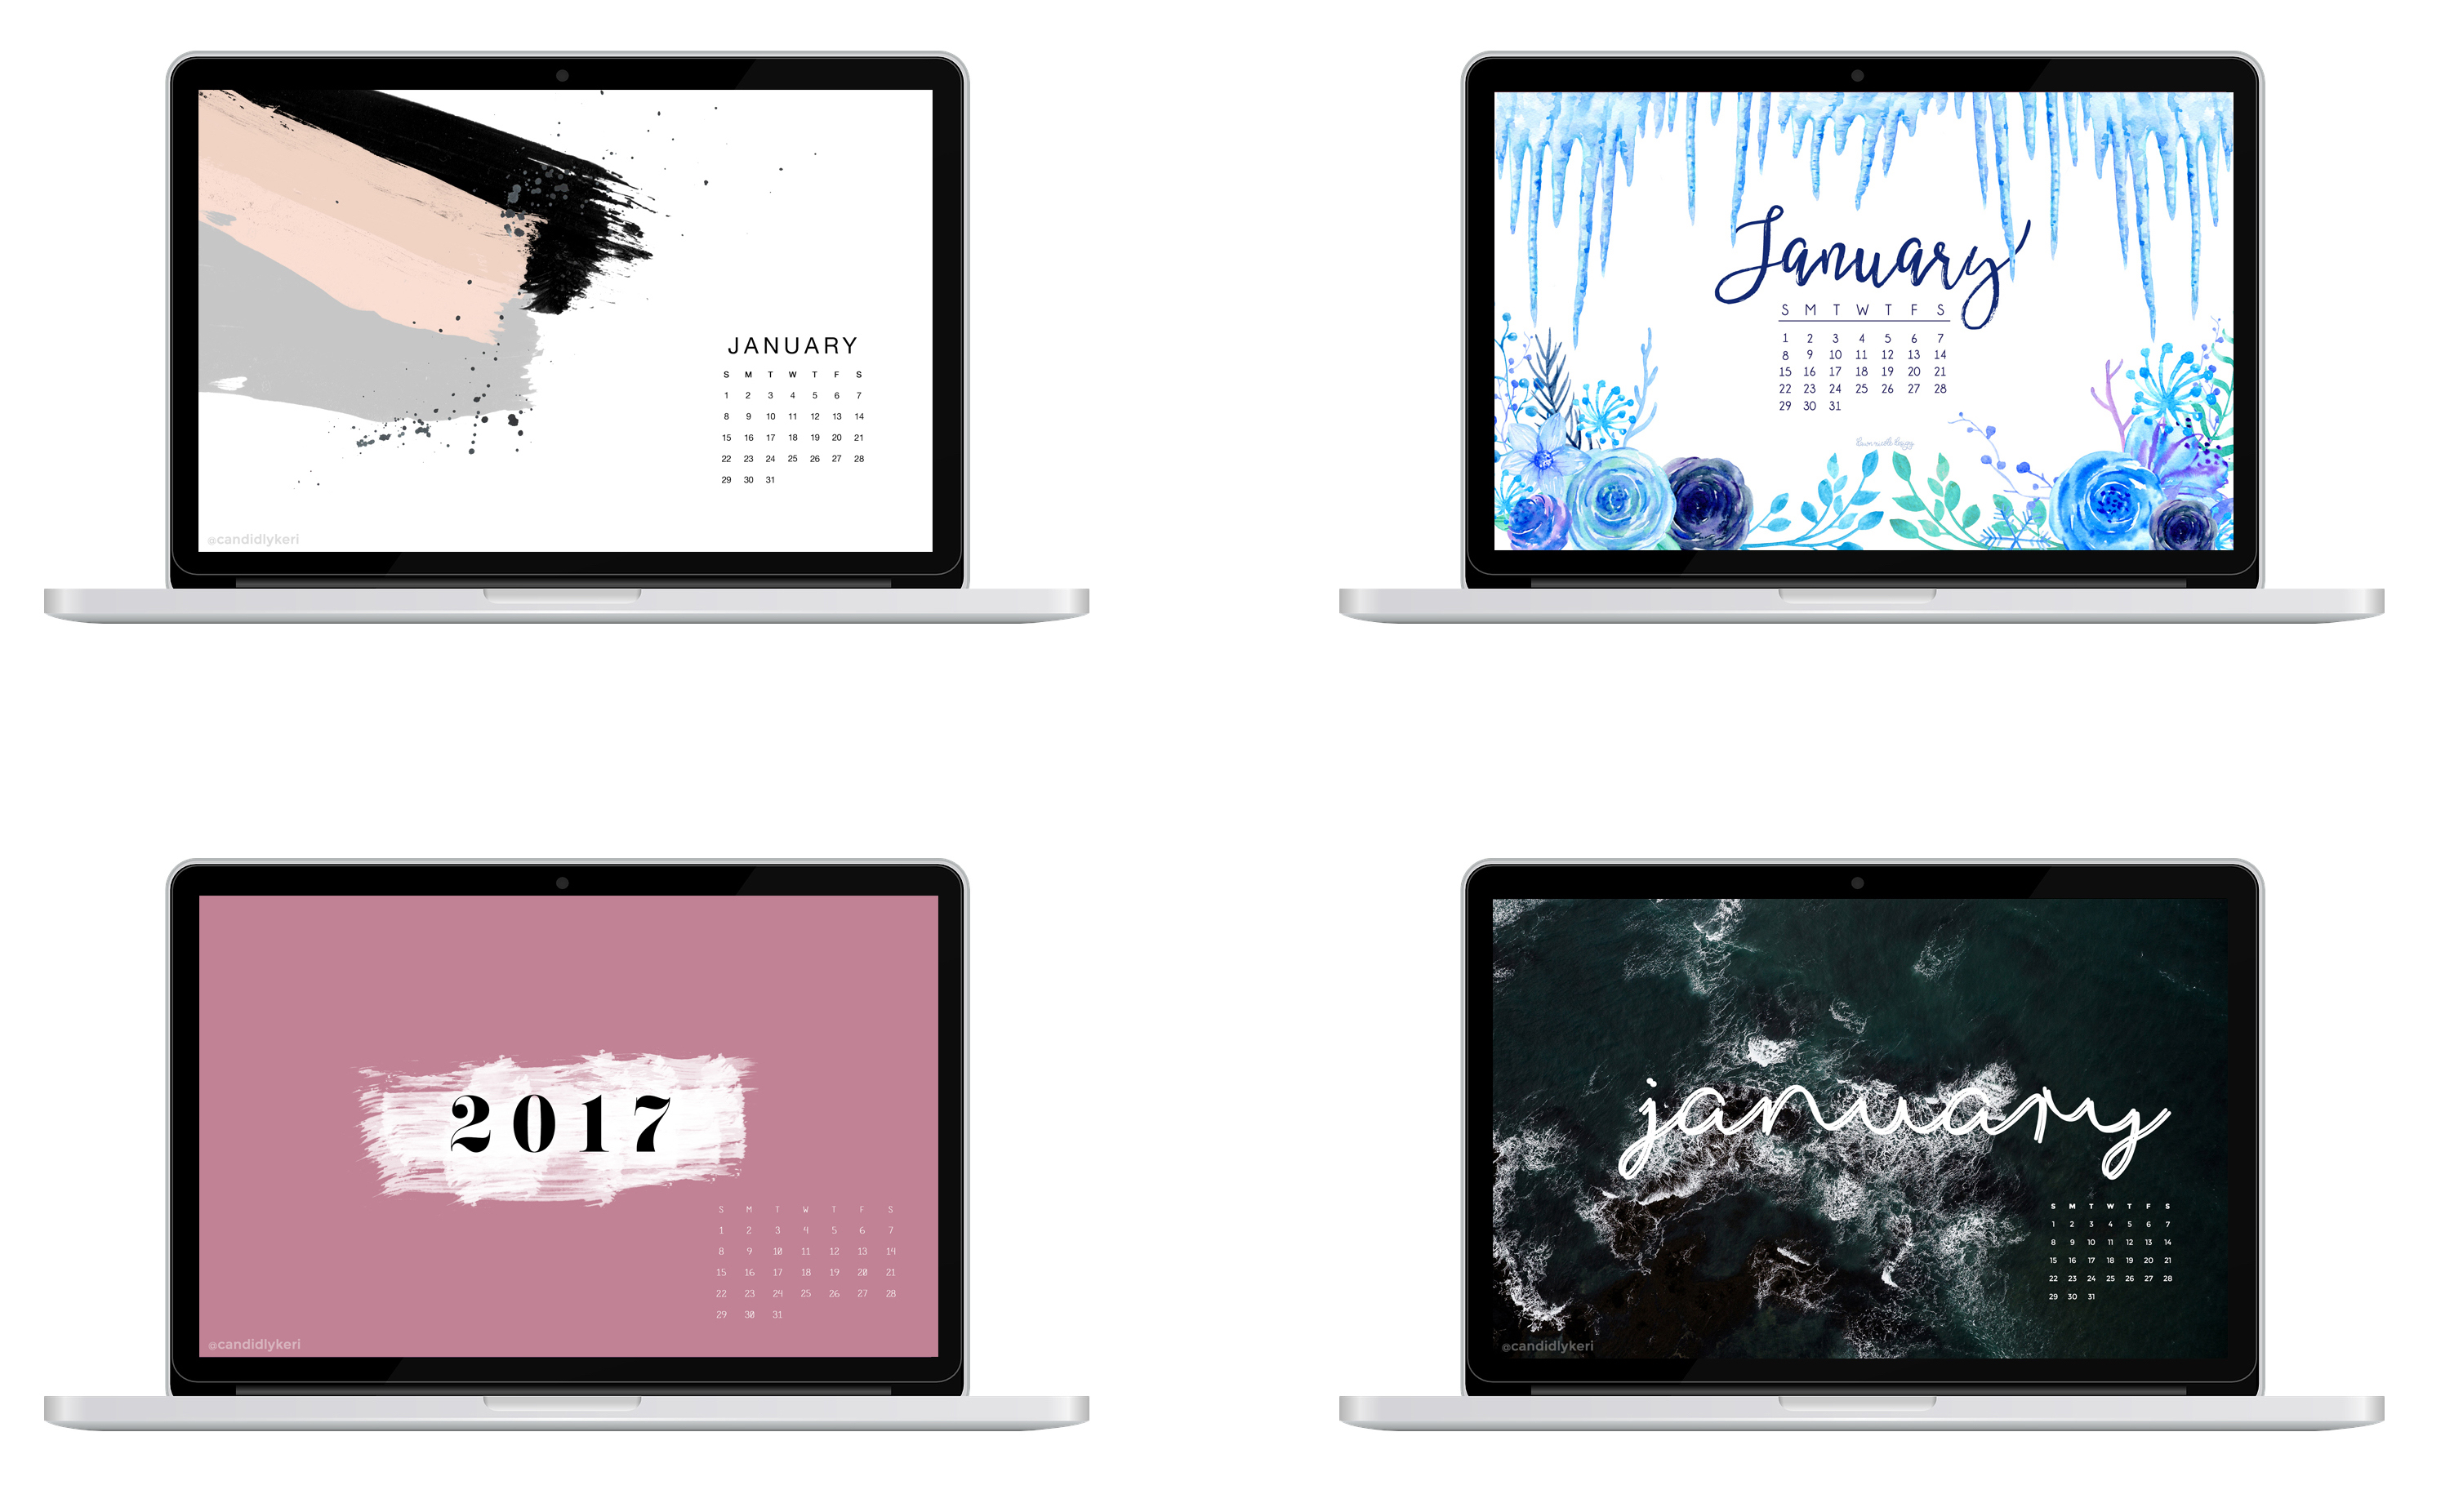 desktop wallpaper january 2017 free chic new year desktop-wallpaper-januar-january-2017